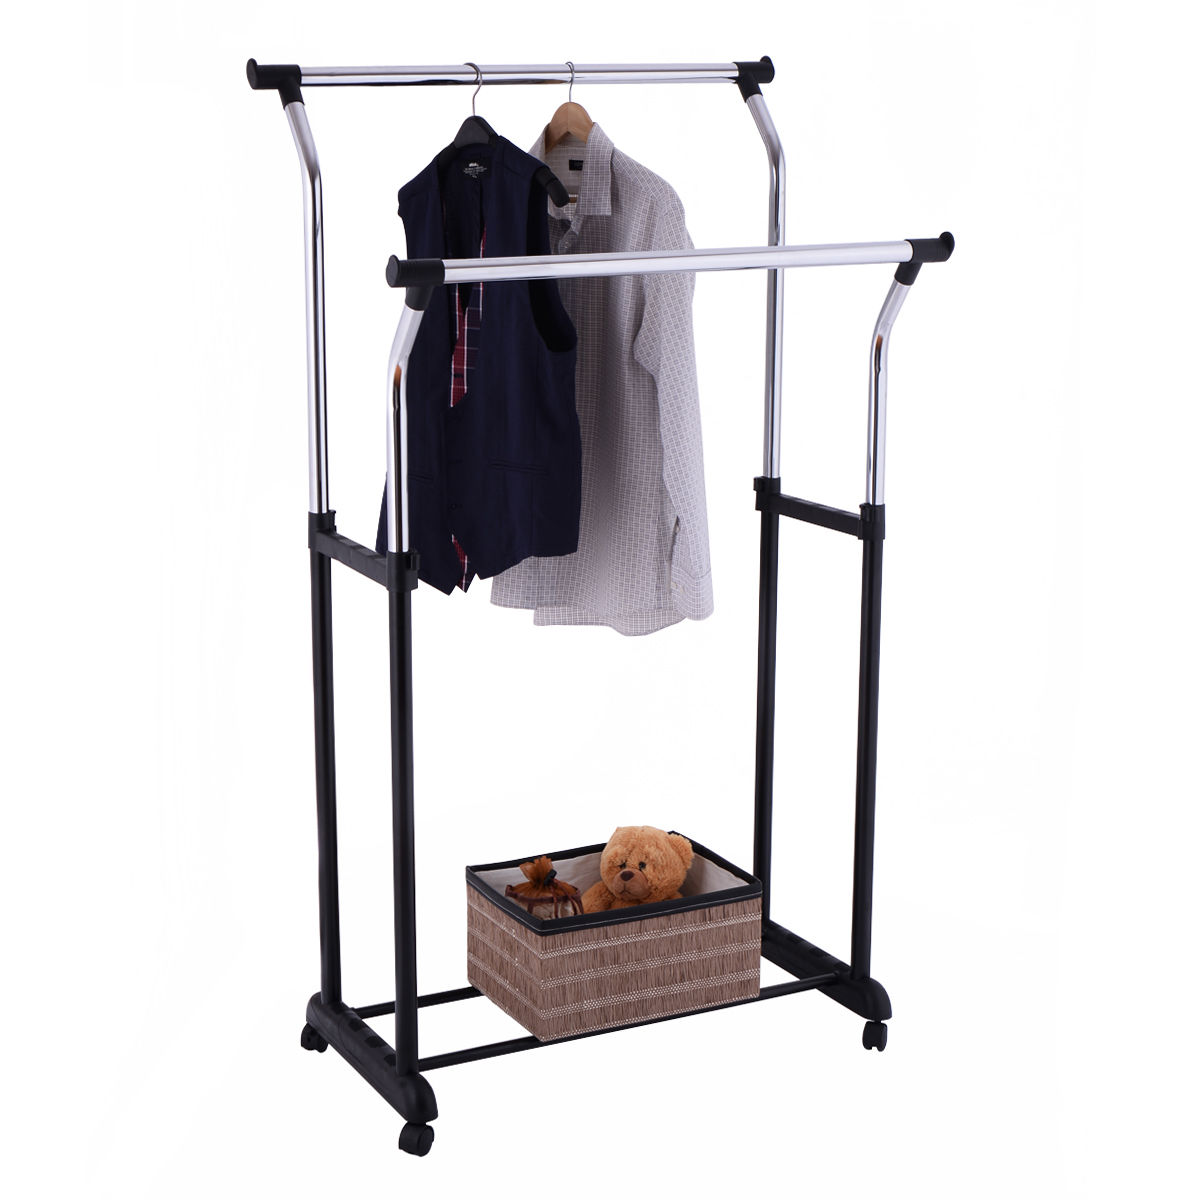 Double rail adjustable rolling garment rack clothes hanger laundry drying rack